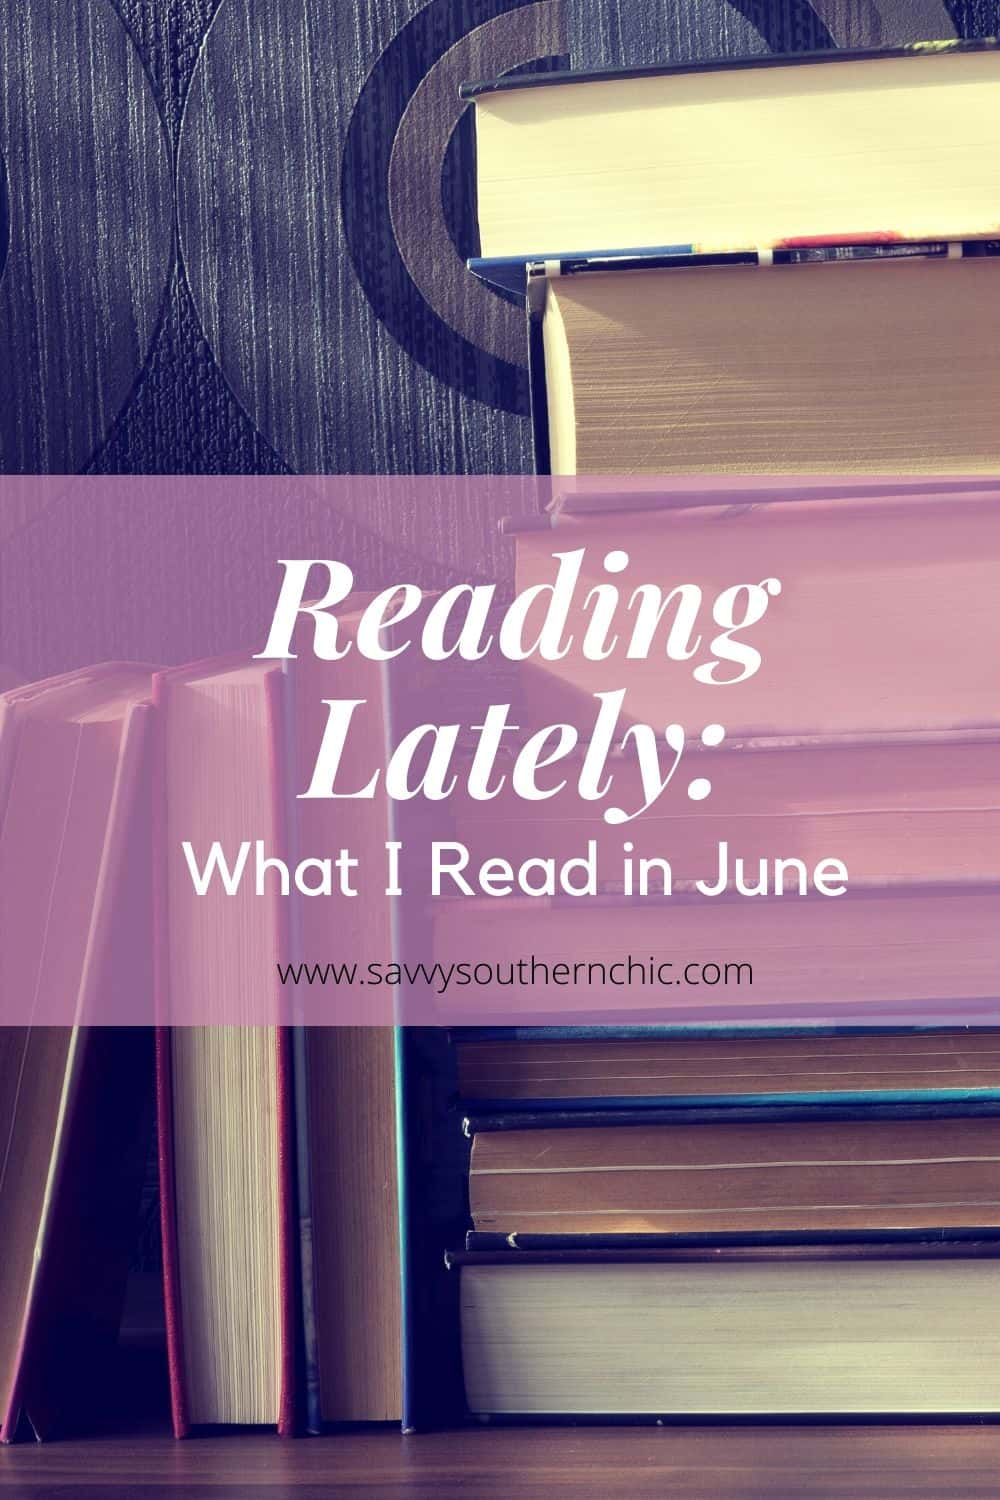 Reading Lately: What I Read in June